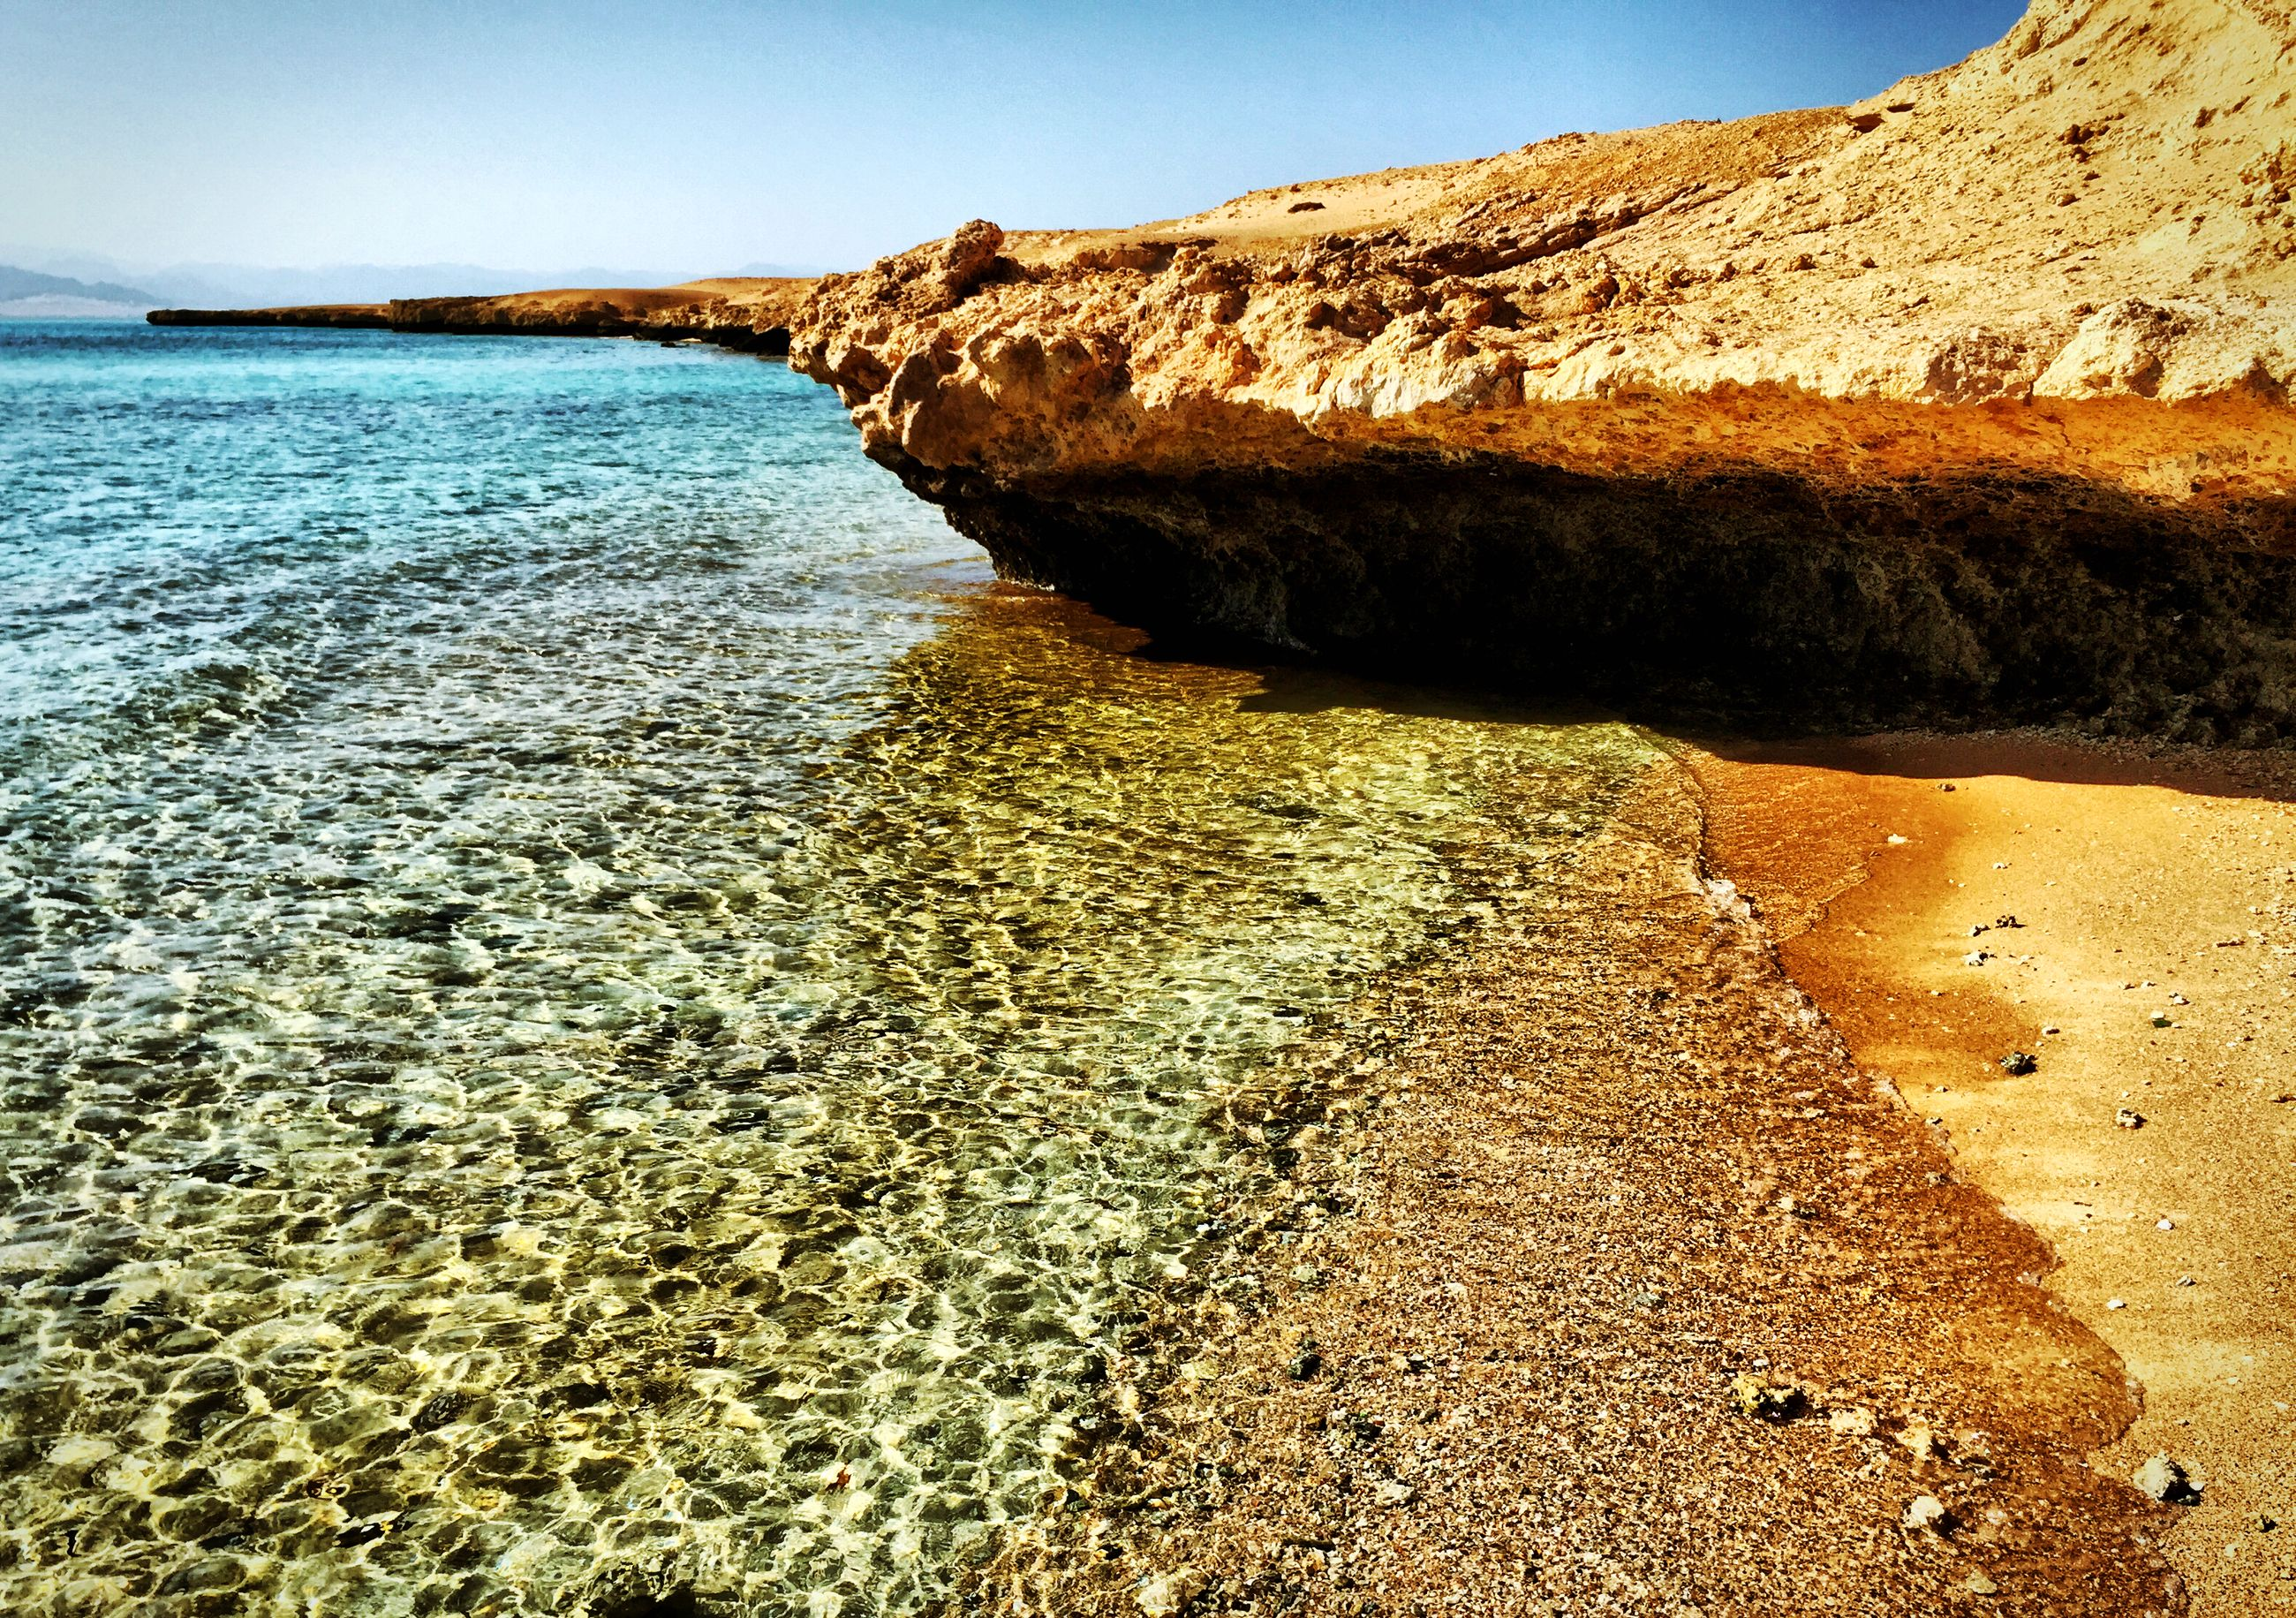 sea, water, beach, shore, tranquility, tranquil scene, sand, horizon over water, scenics, nature, clear sky, blue, beauty in nature, coastline, sky, sunlight, day, idyllic, rock - object, outdoors